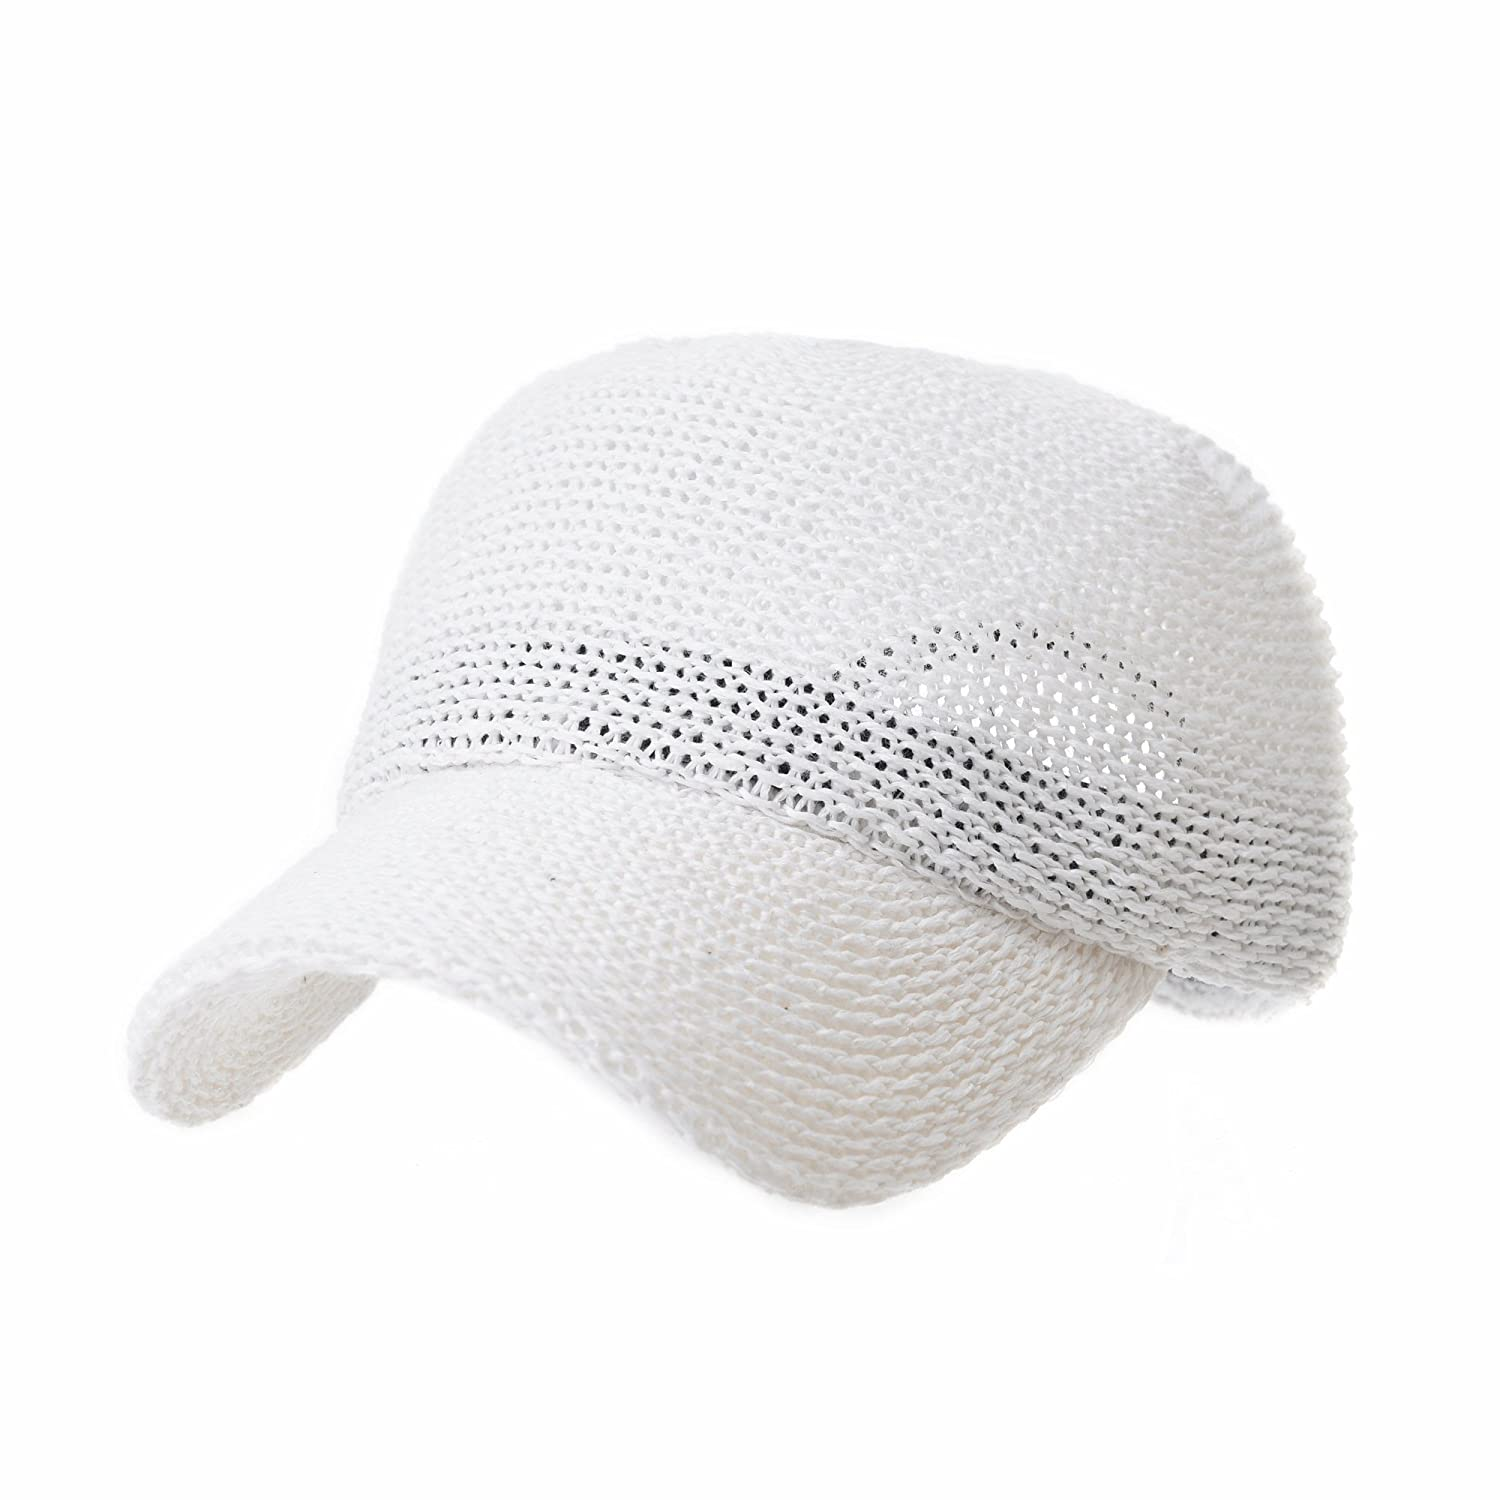 WITHMOONS Baseball Cap Summer Paperstraw Mesh for Men Women KR1960 (Beige)  at Amazon Men s Clothing store  3f968a87a2f4